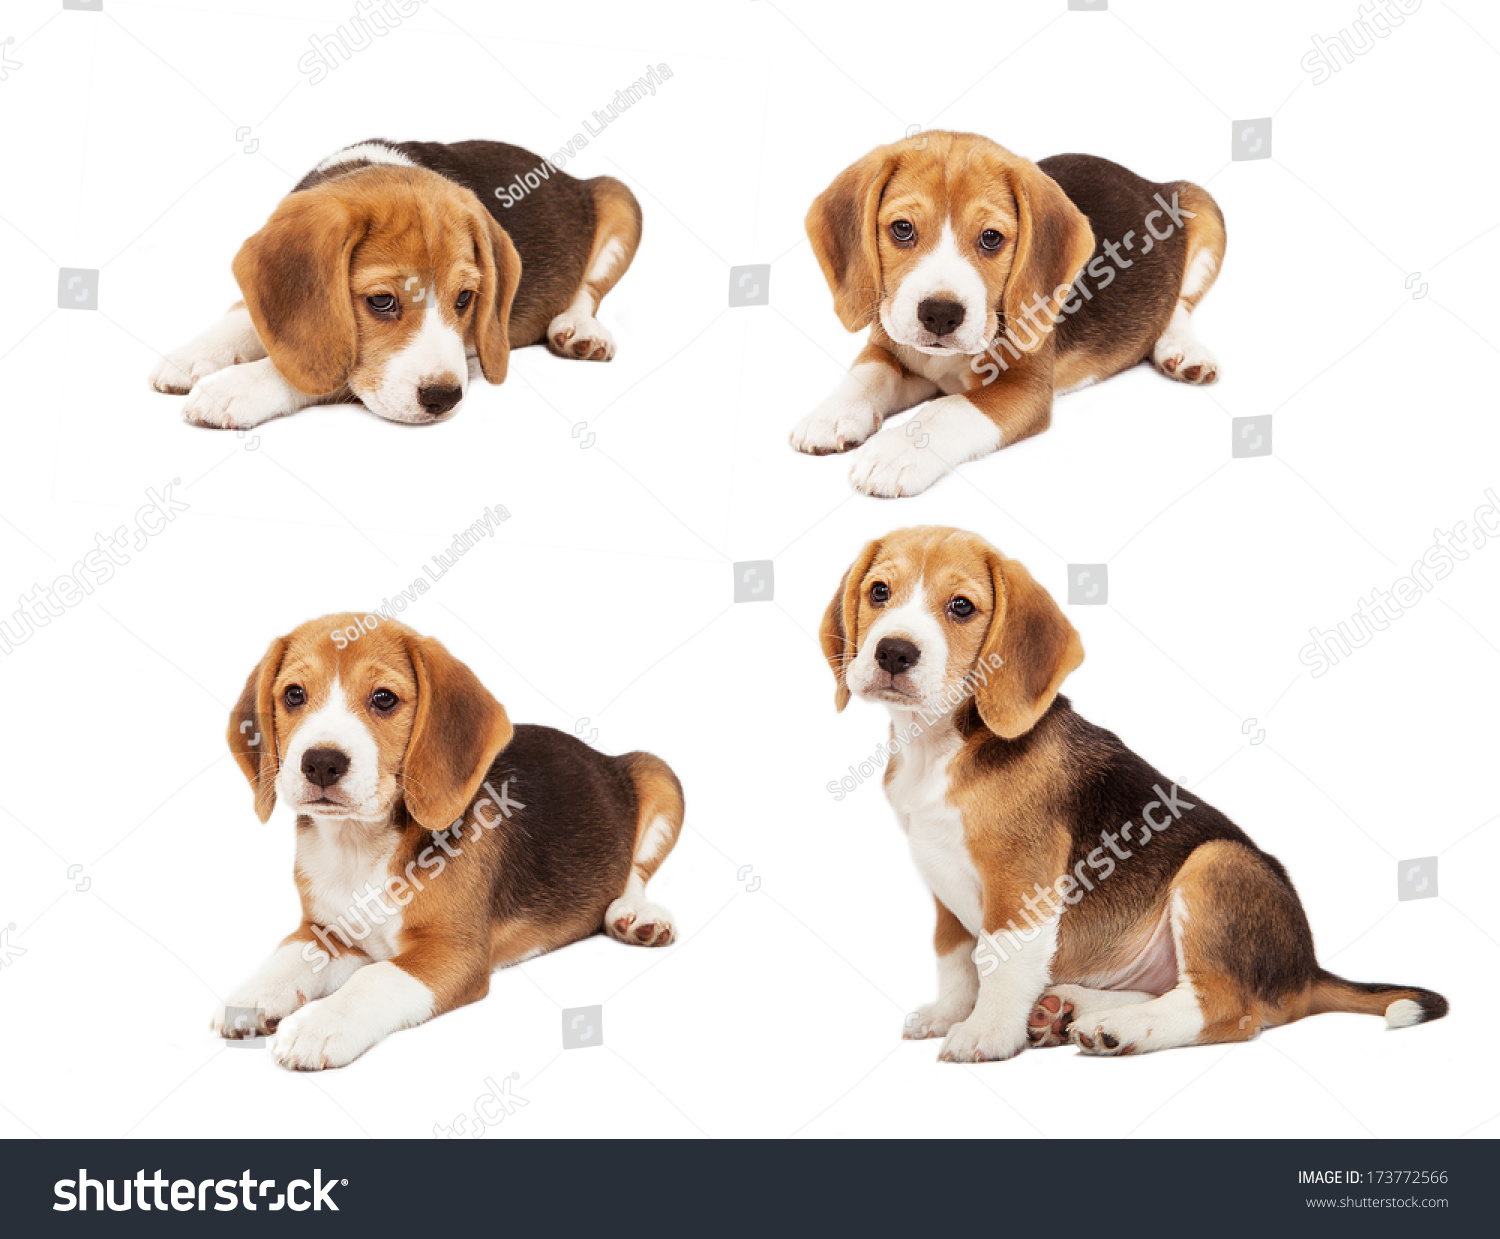 Cute beagle puppy diverse poses stock photo 173772566 shutterstock cute beagle puppy in diverse poses voltagebd Gallery